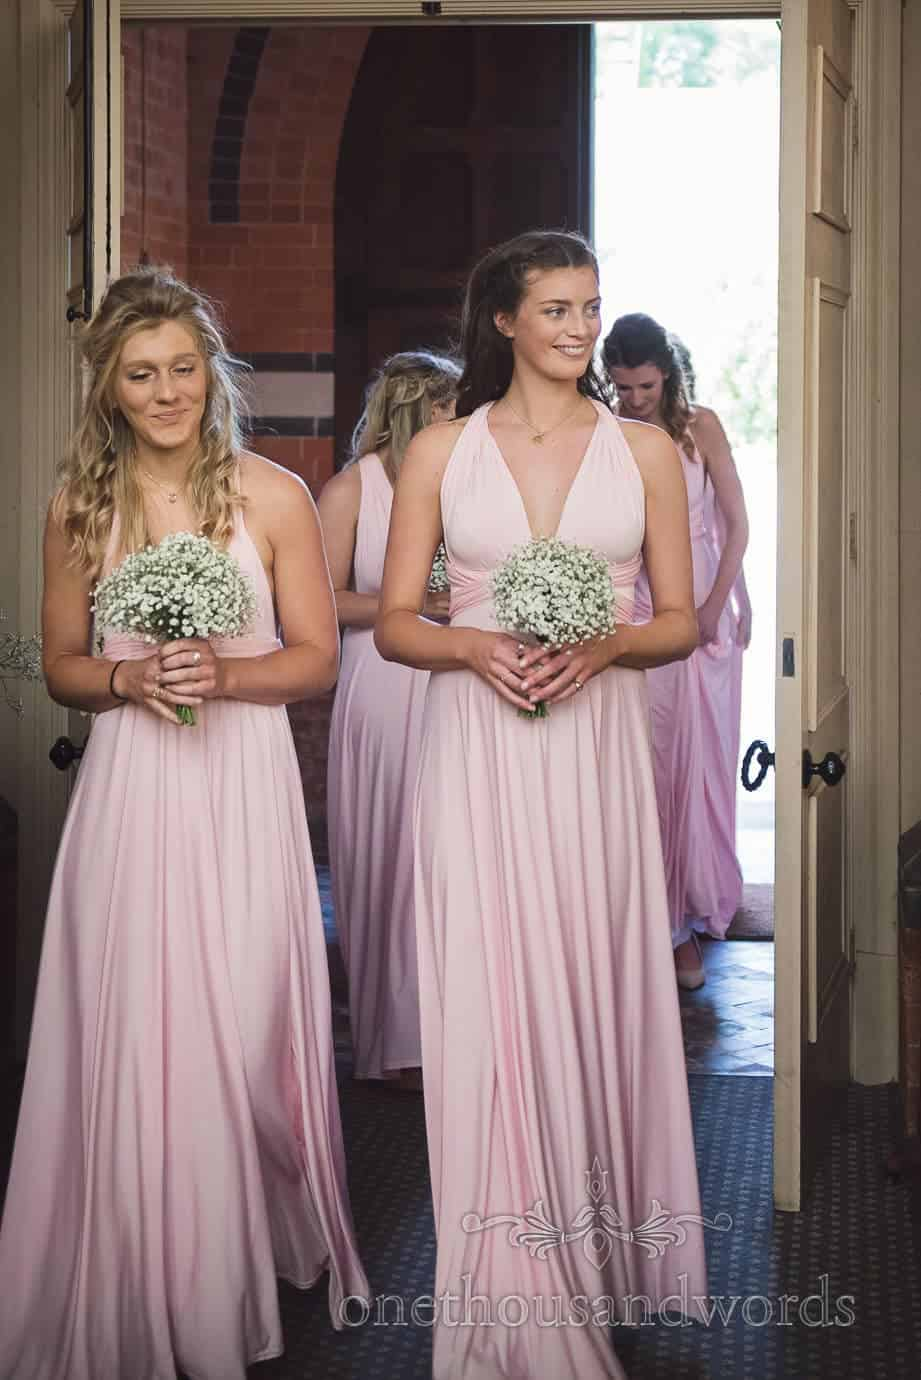 Bridesmaids in dusty pink Greco-Roman dresses enter church wedding ceremony